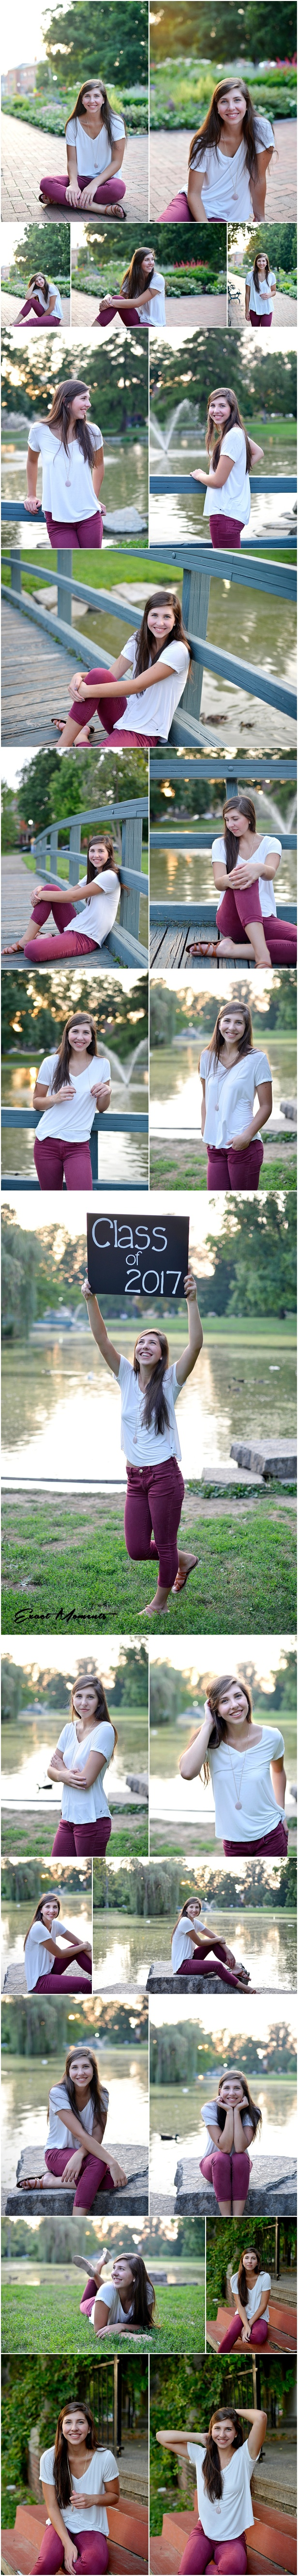 senior-photos-schiller-park-columbus-ohio